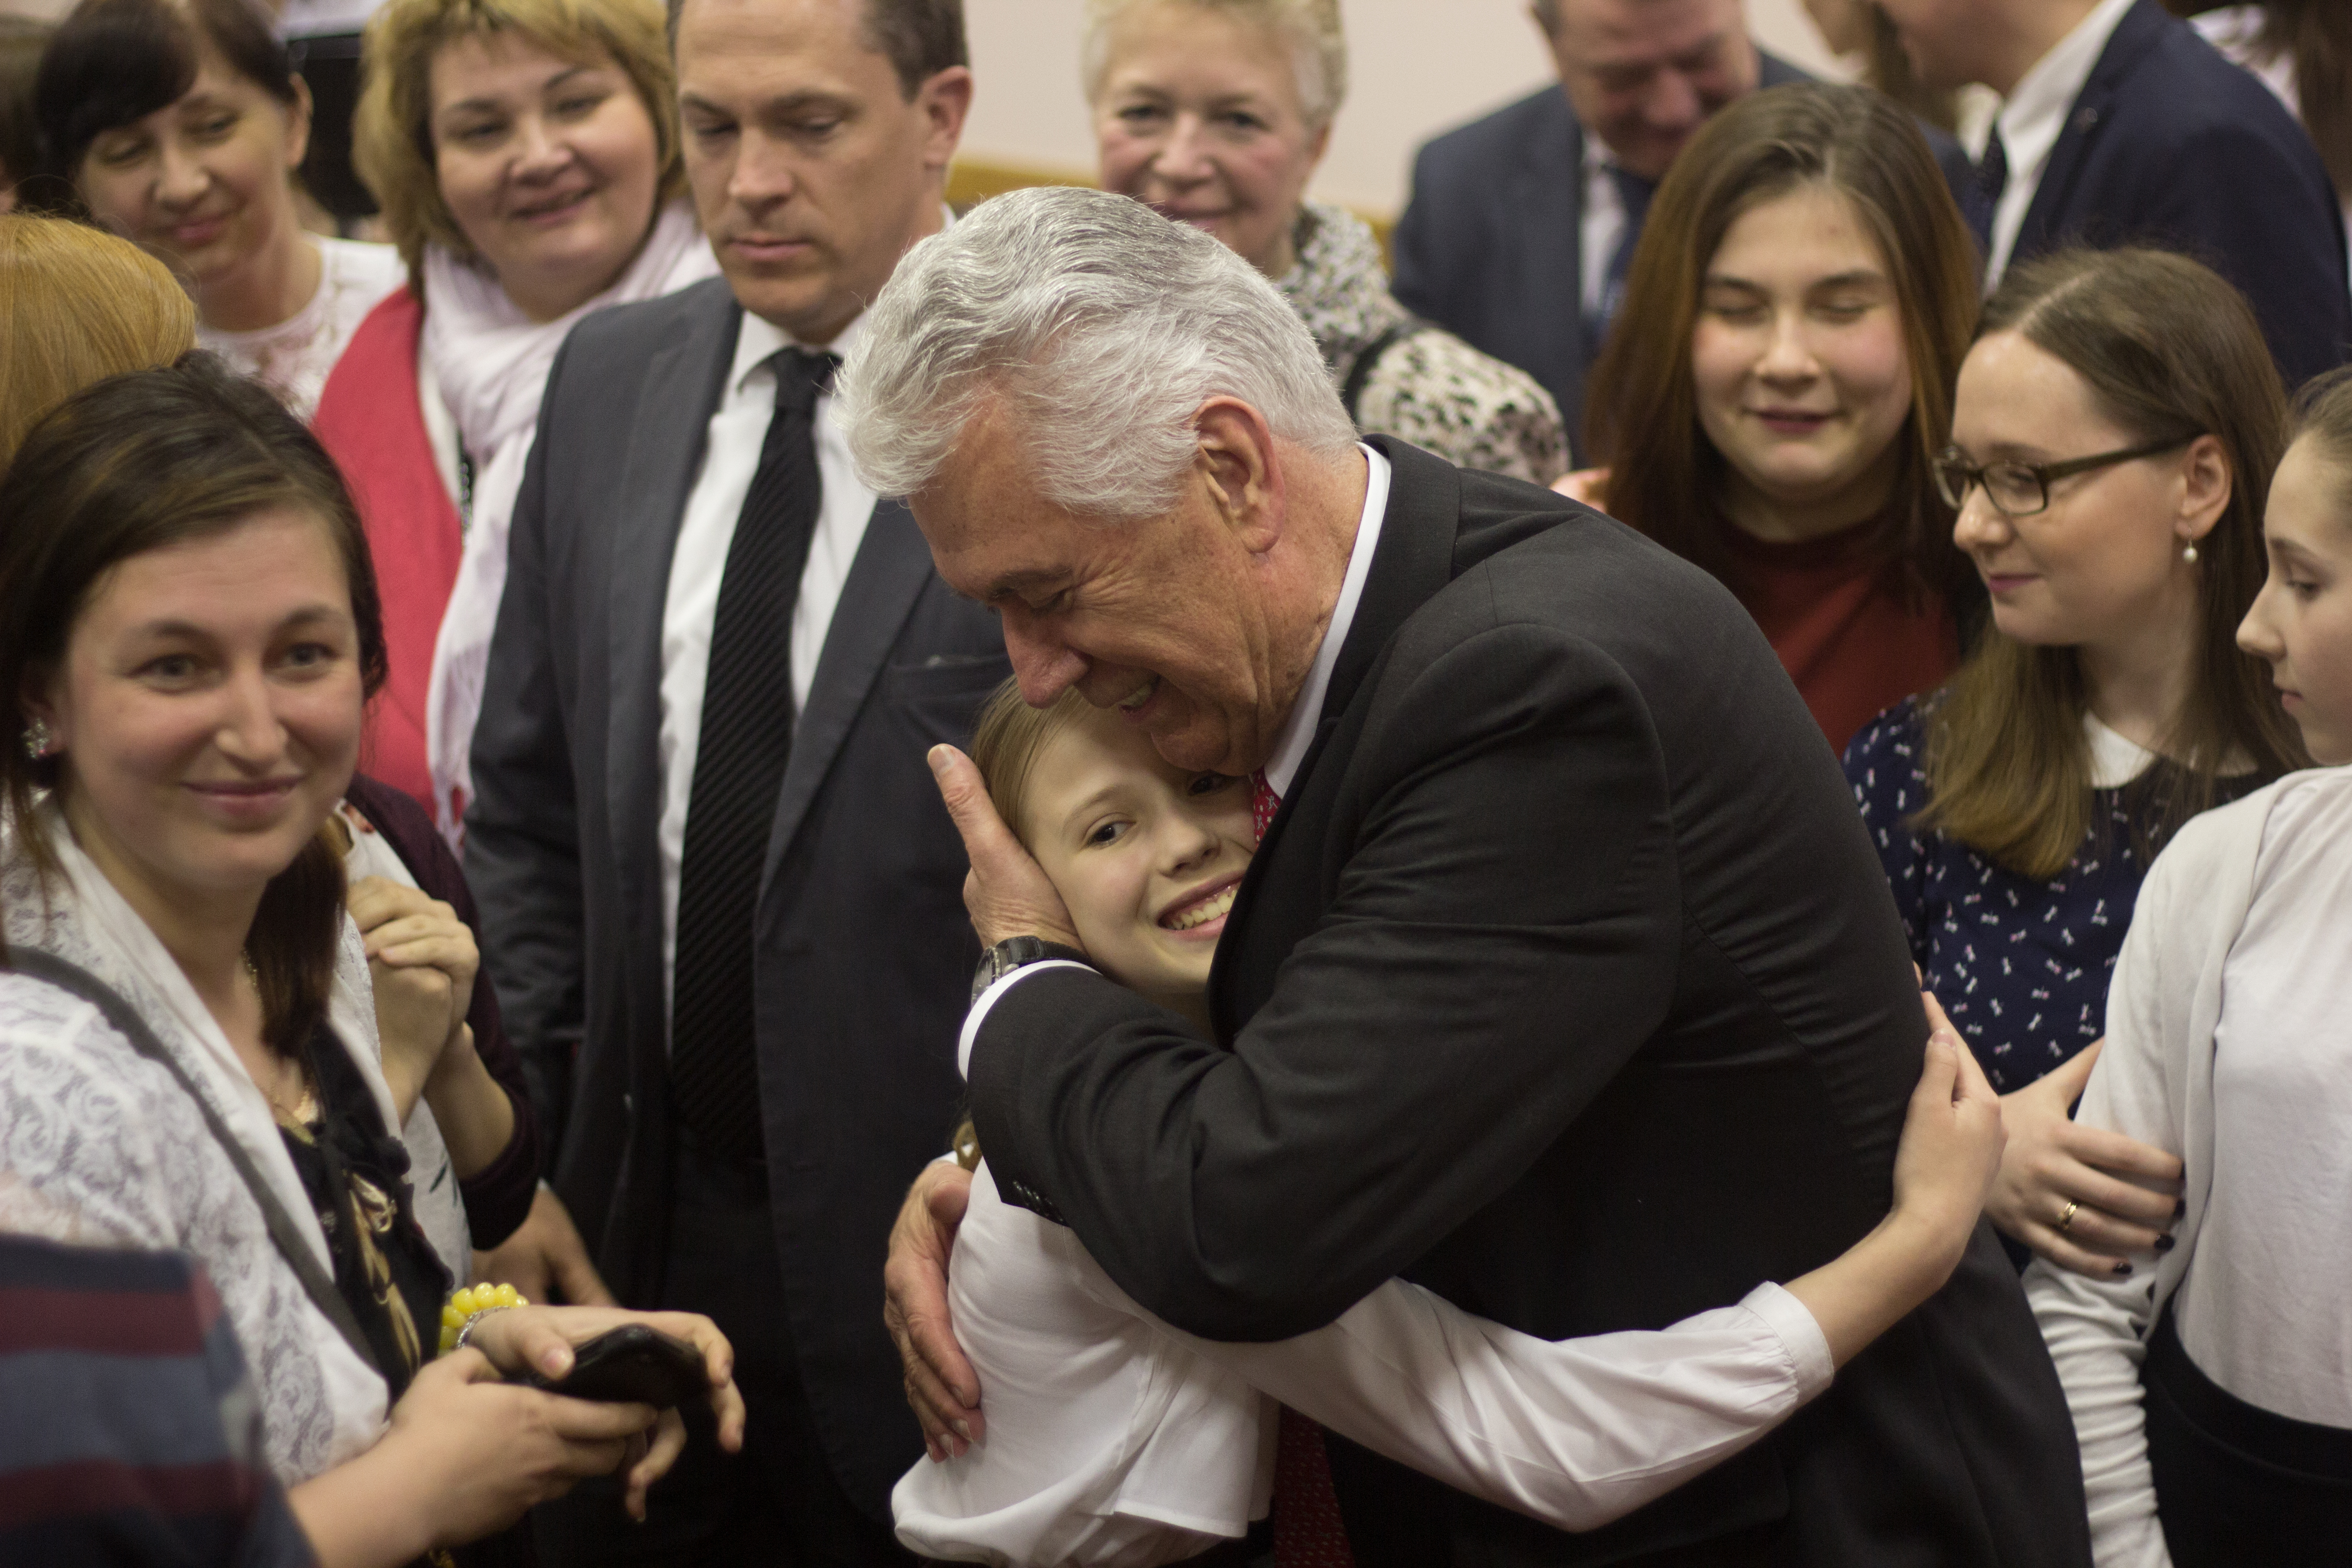 A warmth was shared between Elder Dieter F. Uchtdorf of the Quorum of the Twelve Apostles and Church members in Russia during his visits to Moscow and St. Petersburg in late April 2018.